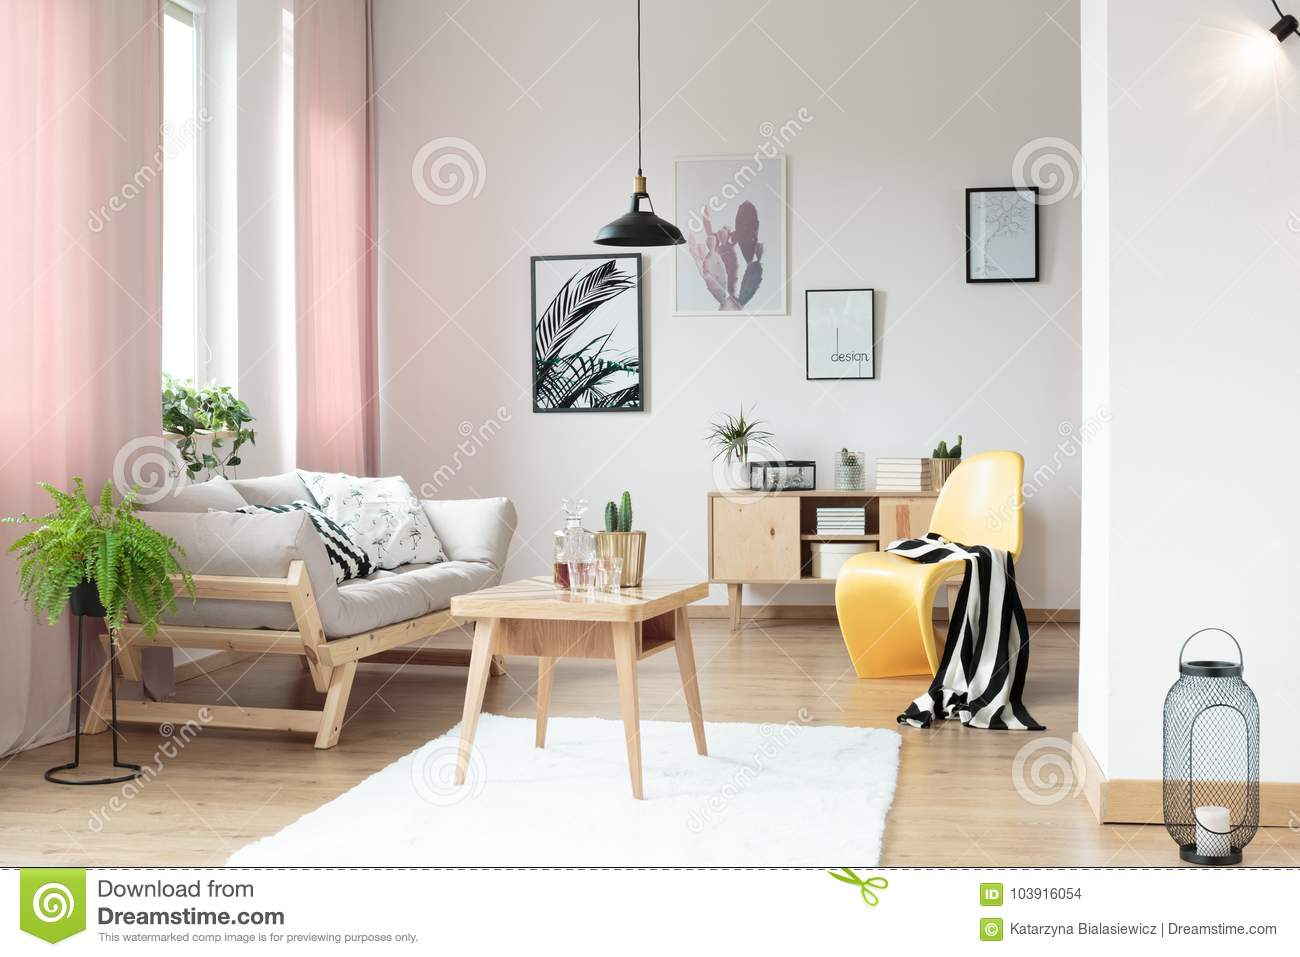 Pastel Curtains In Living Room Stock Photo - Image of pillows ...